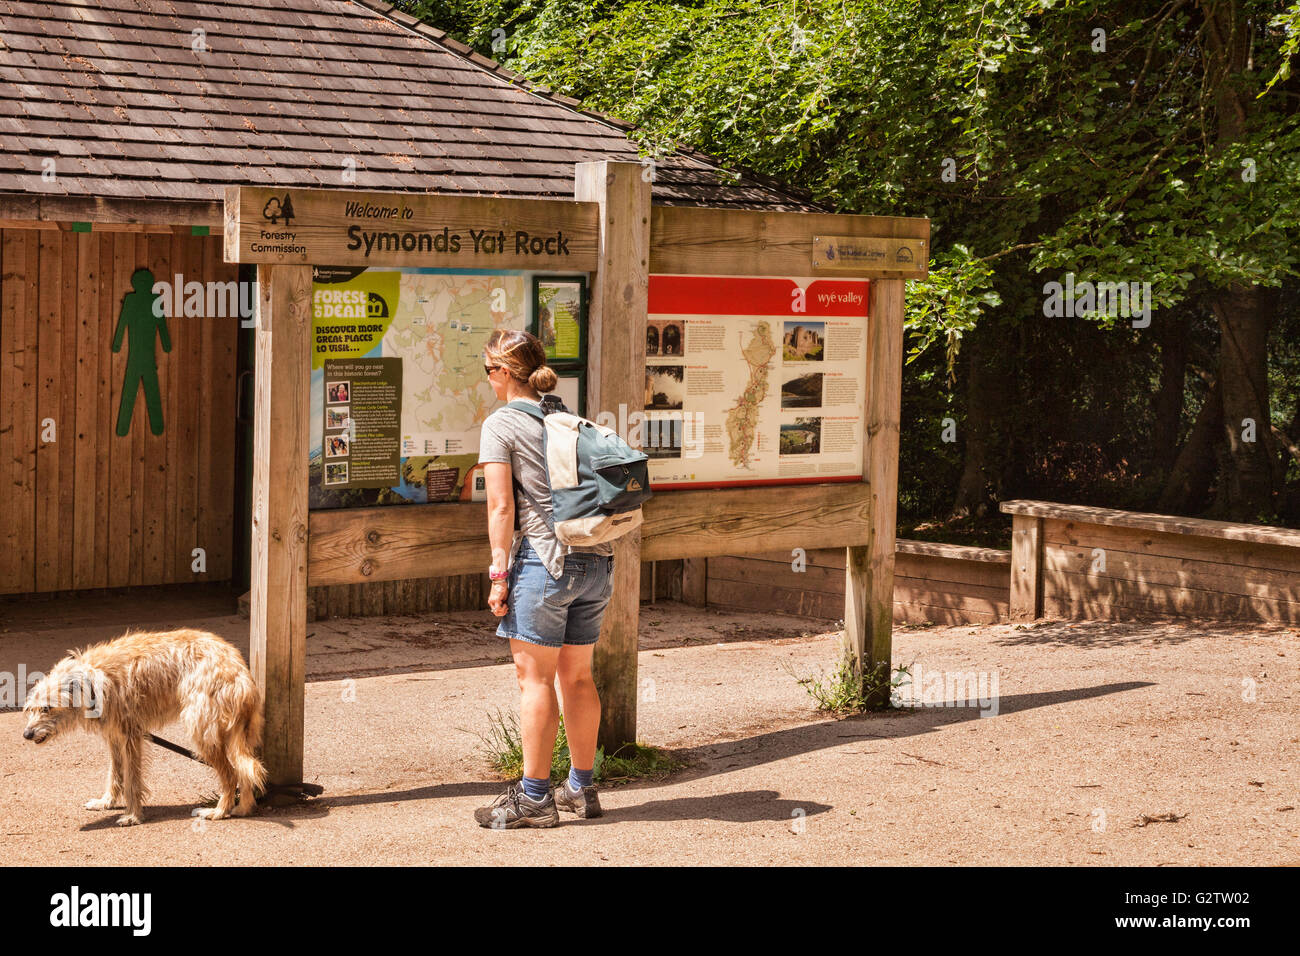 Woman in hiking gear looking at map on noticeboard at Symonds Yat Rock, Gloucestershire, England, UK - Stock Image